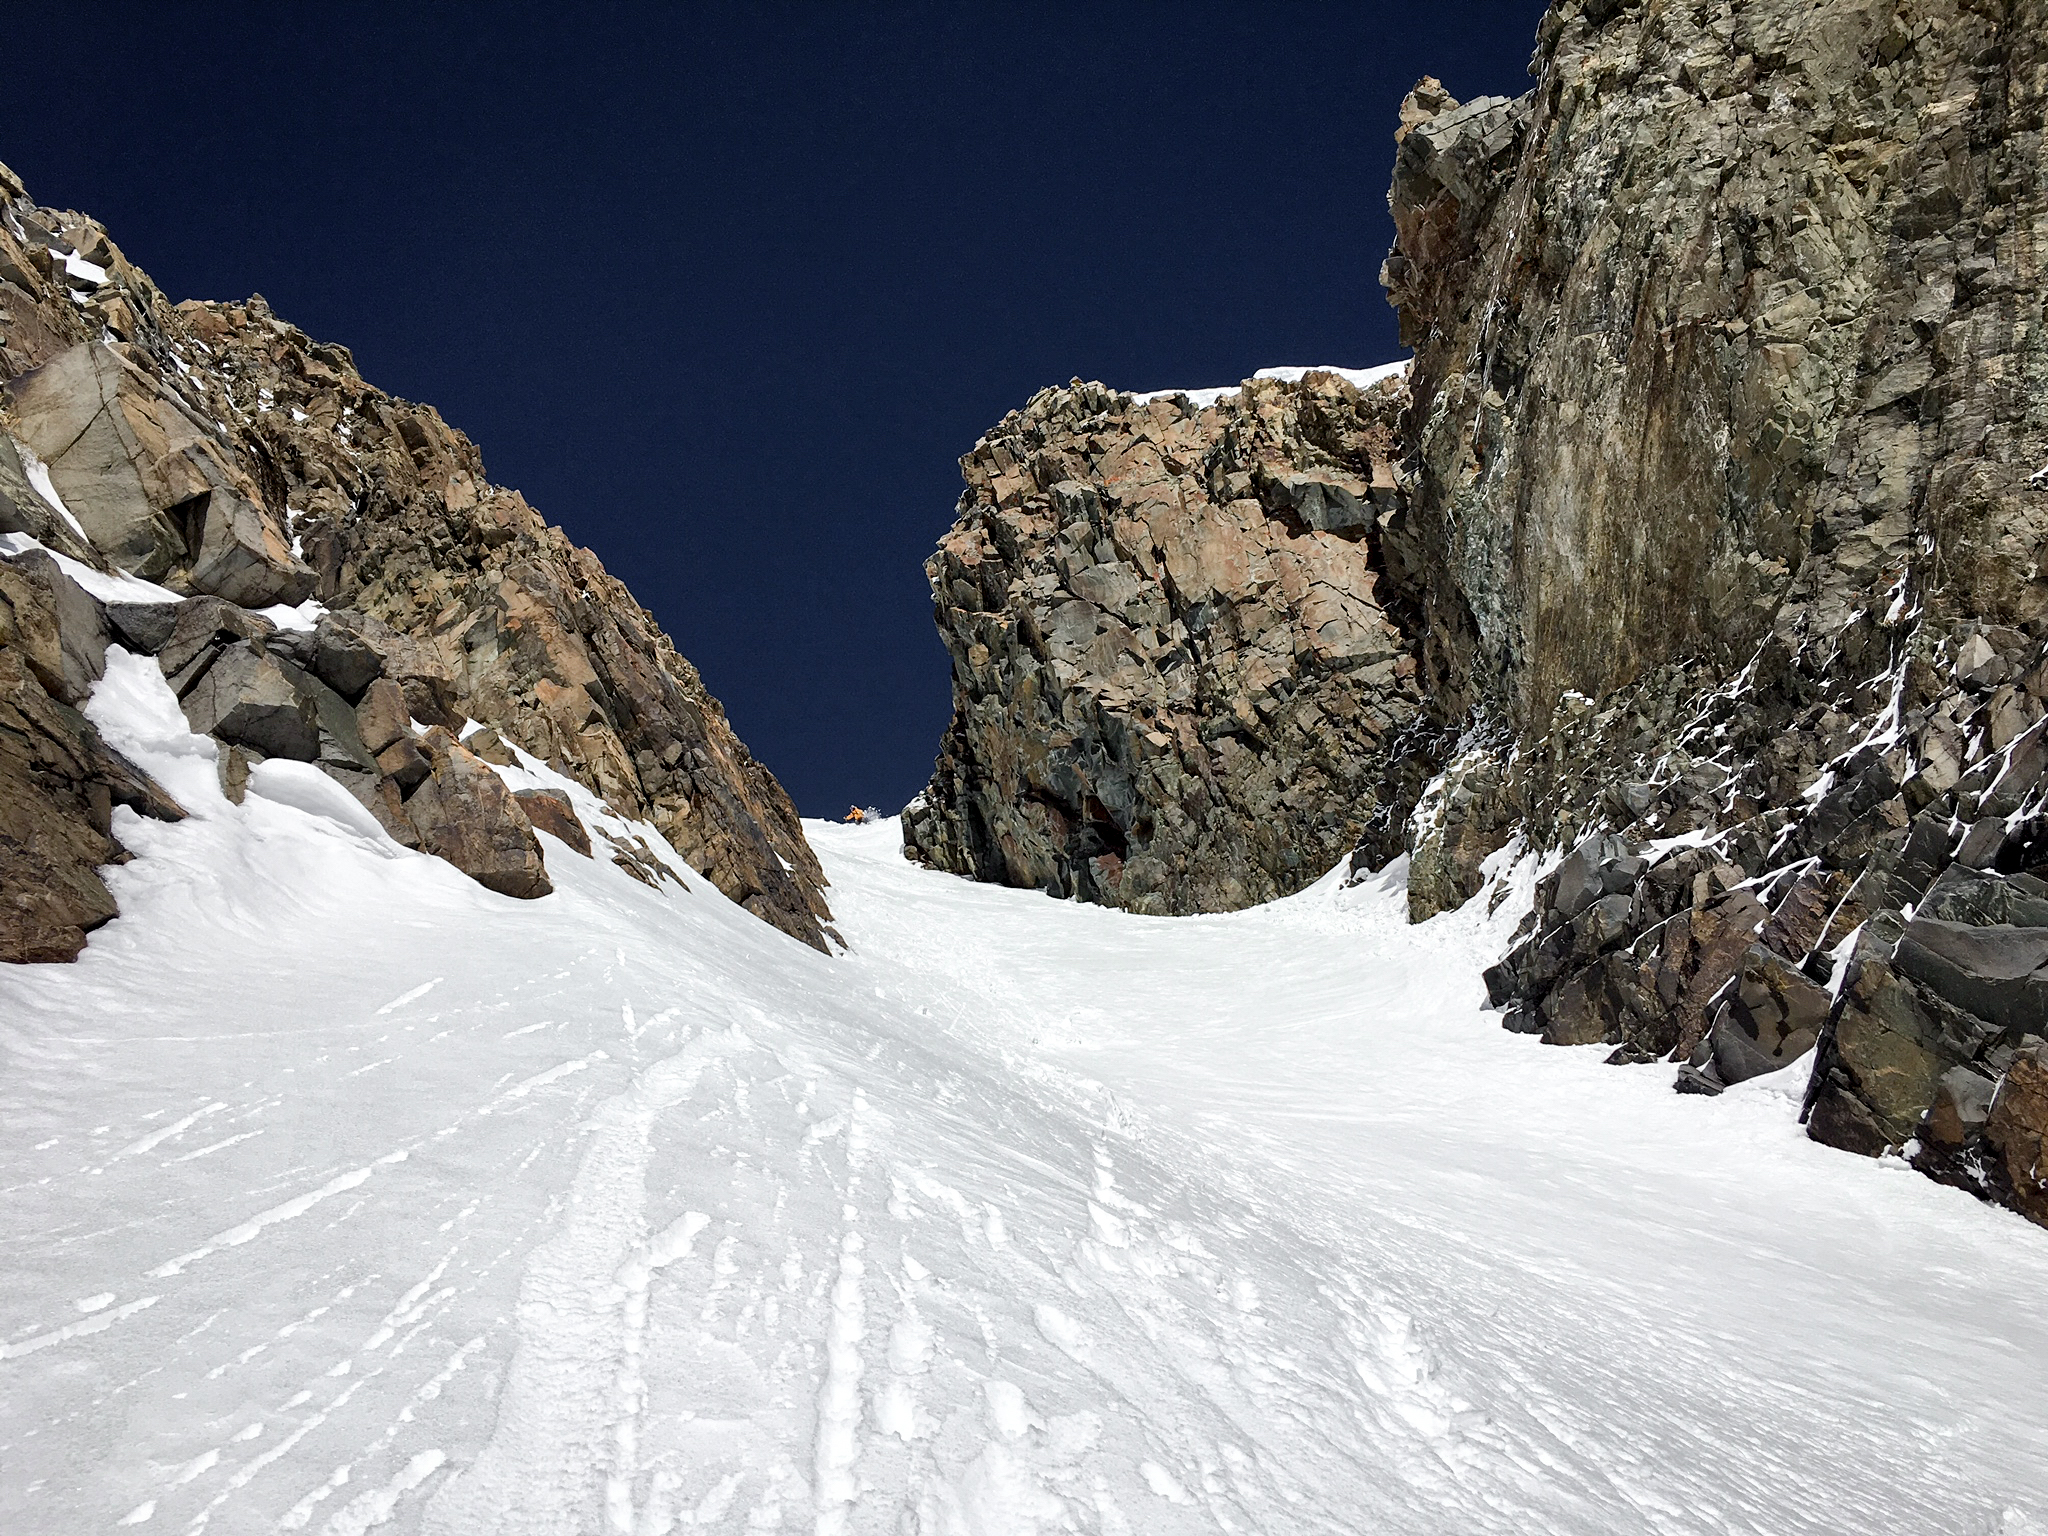 TJ David entering the crux of the couloir. Photo by Patrick Westfeldt.